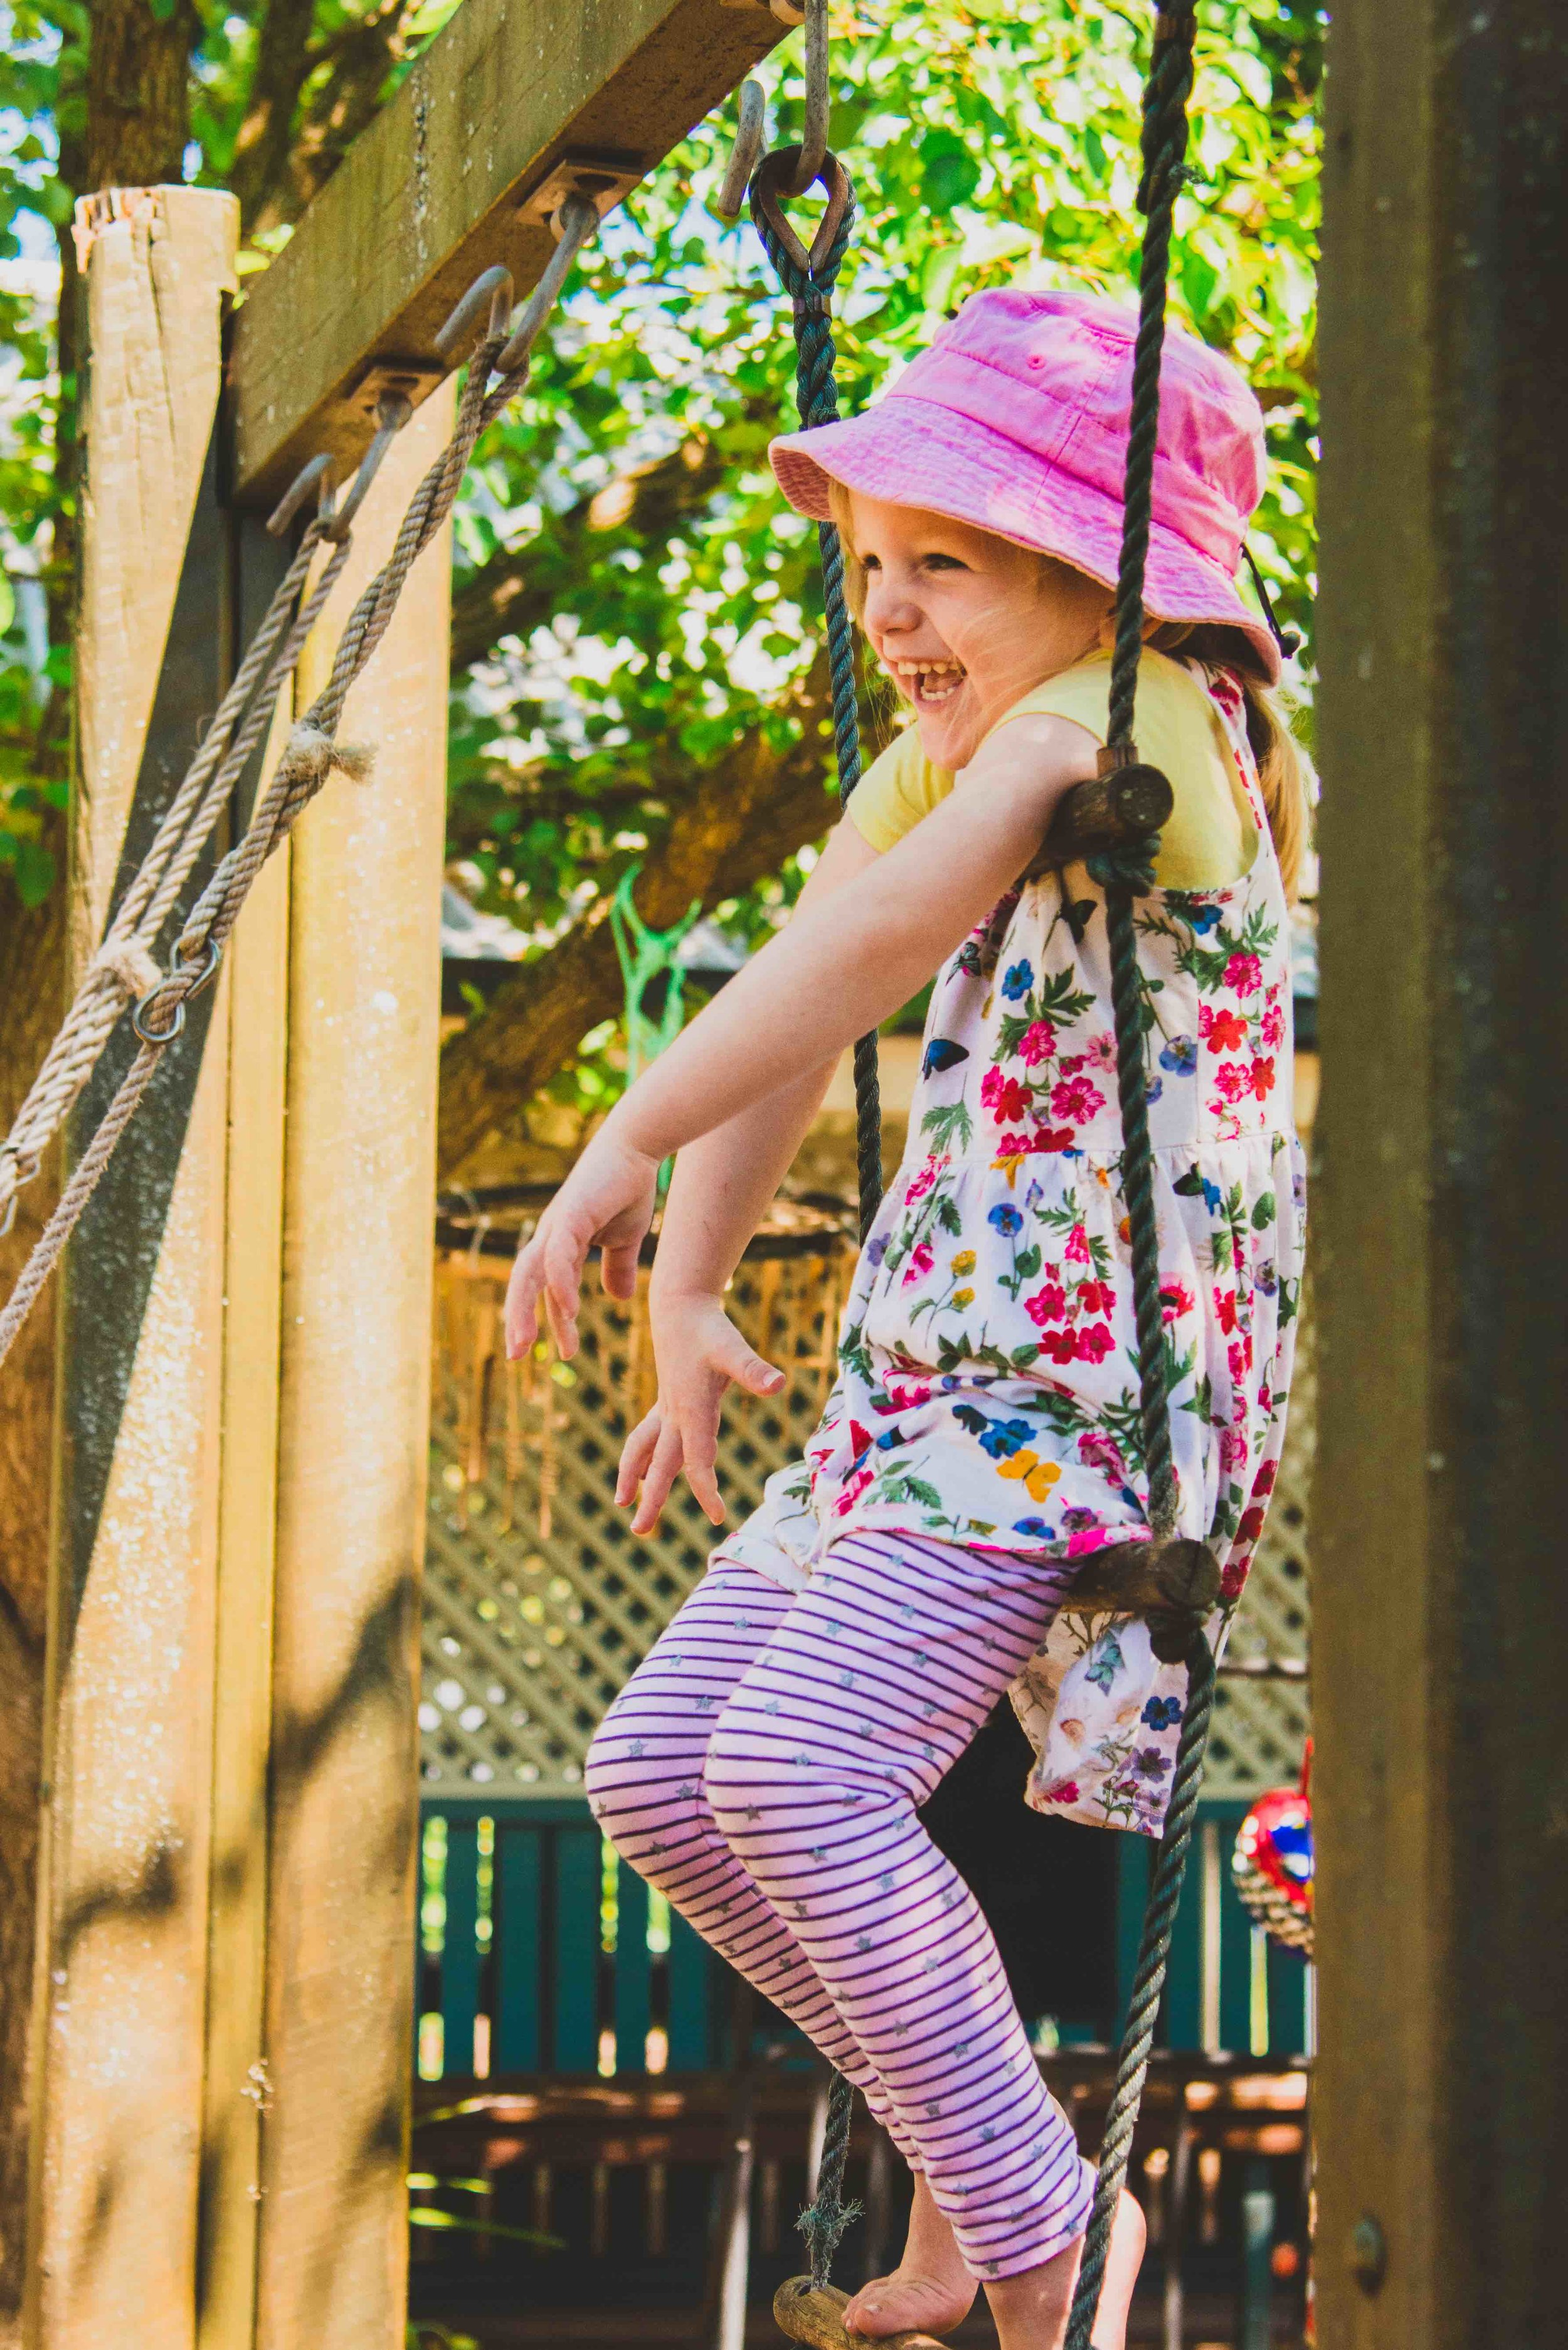 Little girl in pink hat laughing with joy on rope ladder